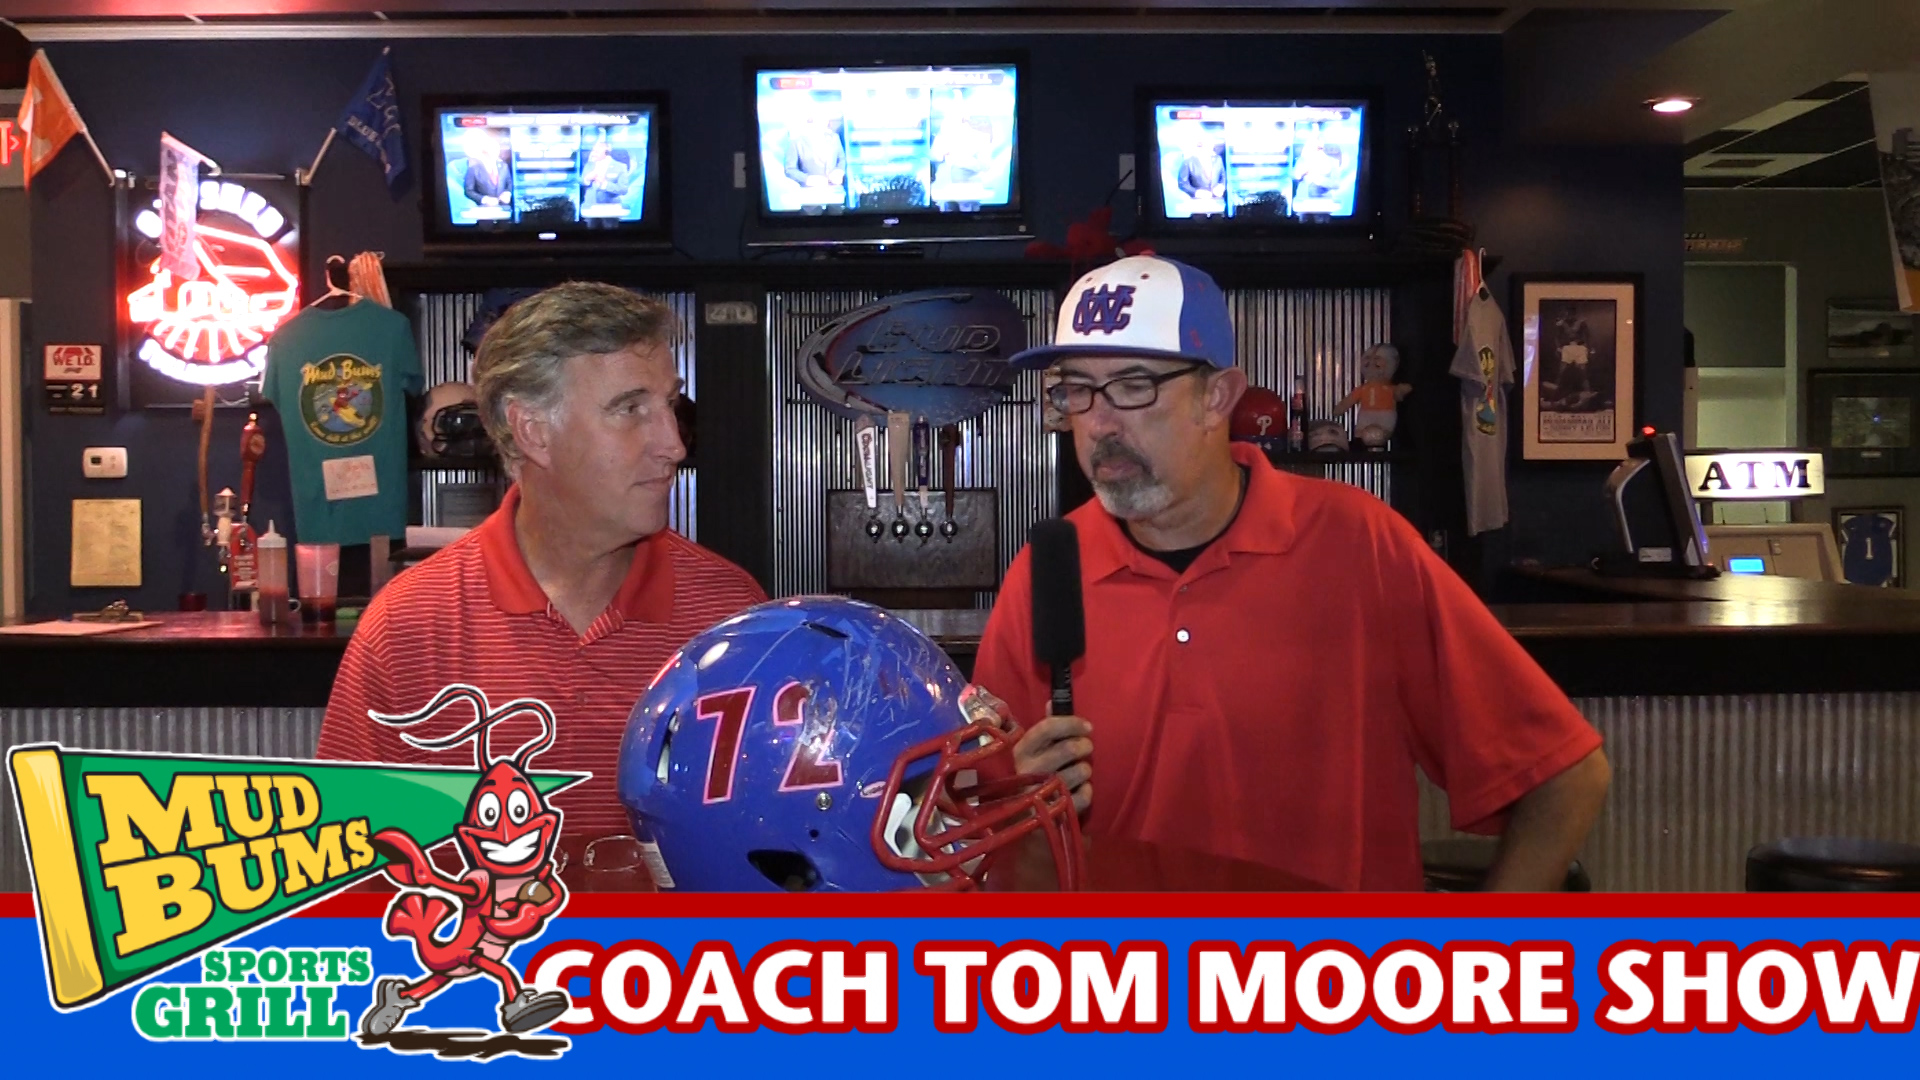 Coach Tom Moore discusses the Smyrna game